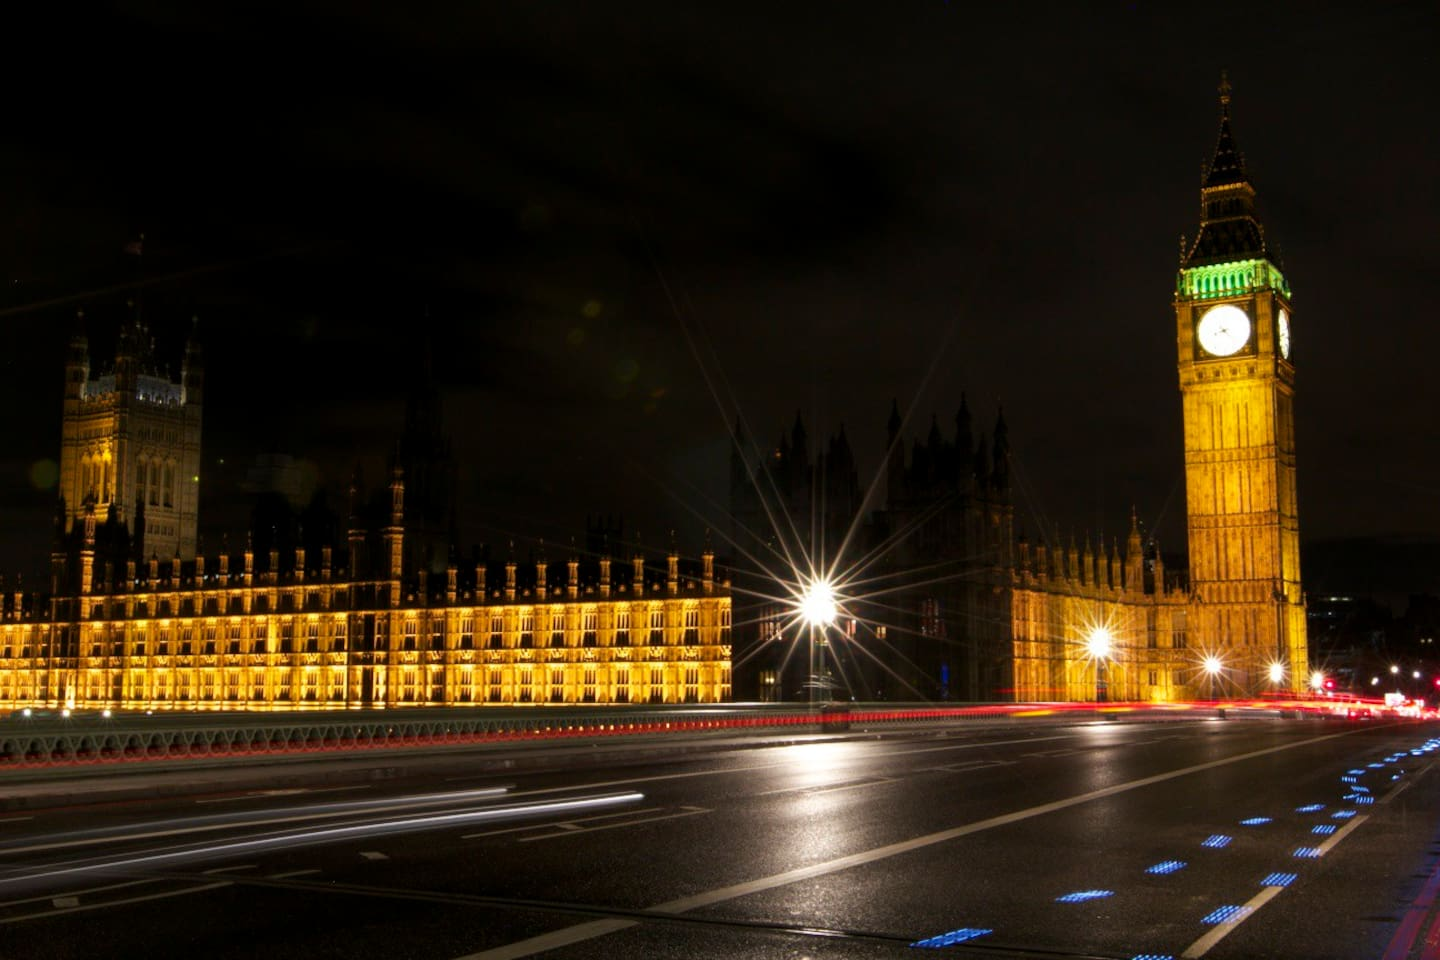 Big Ben view from westminster bridge (2-3 minutes walk from home)